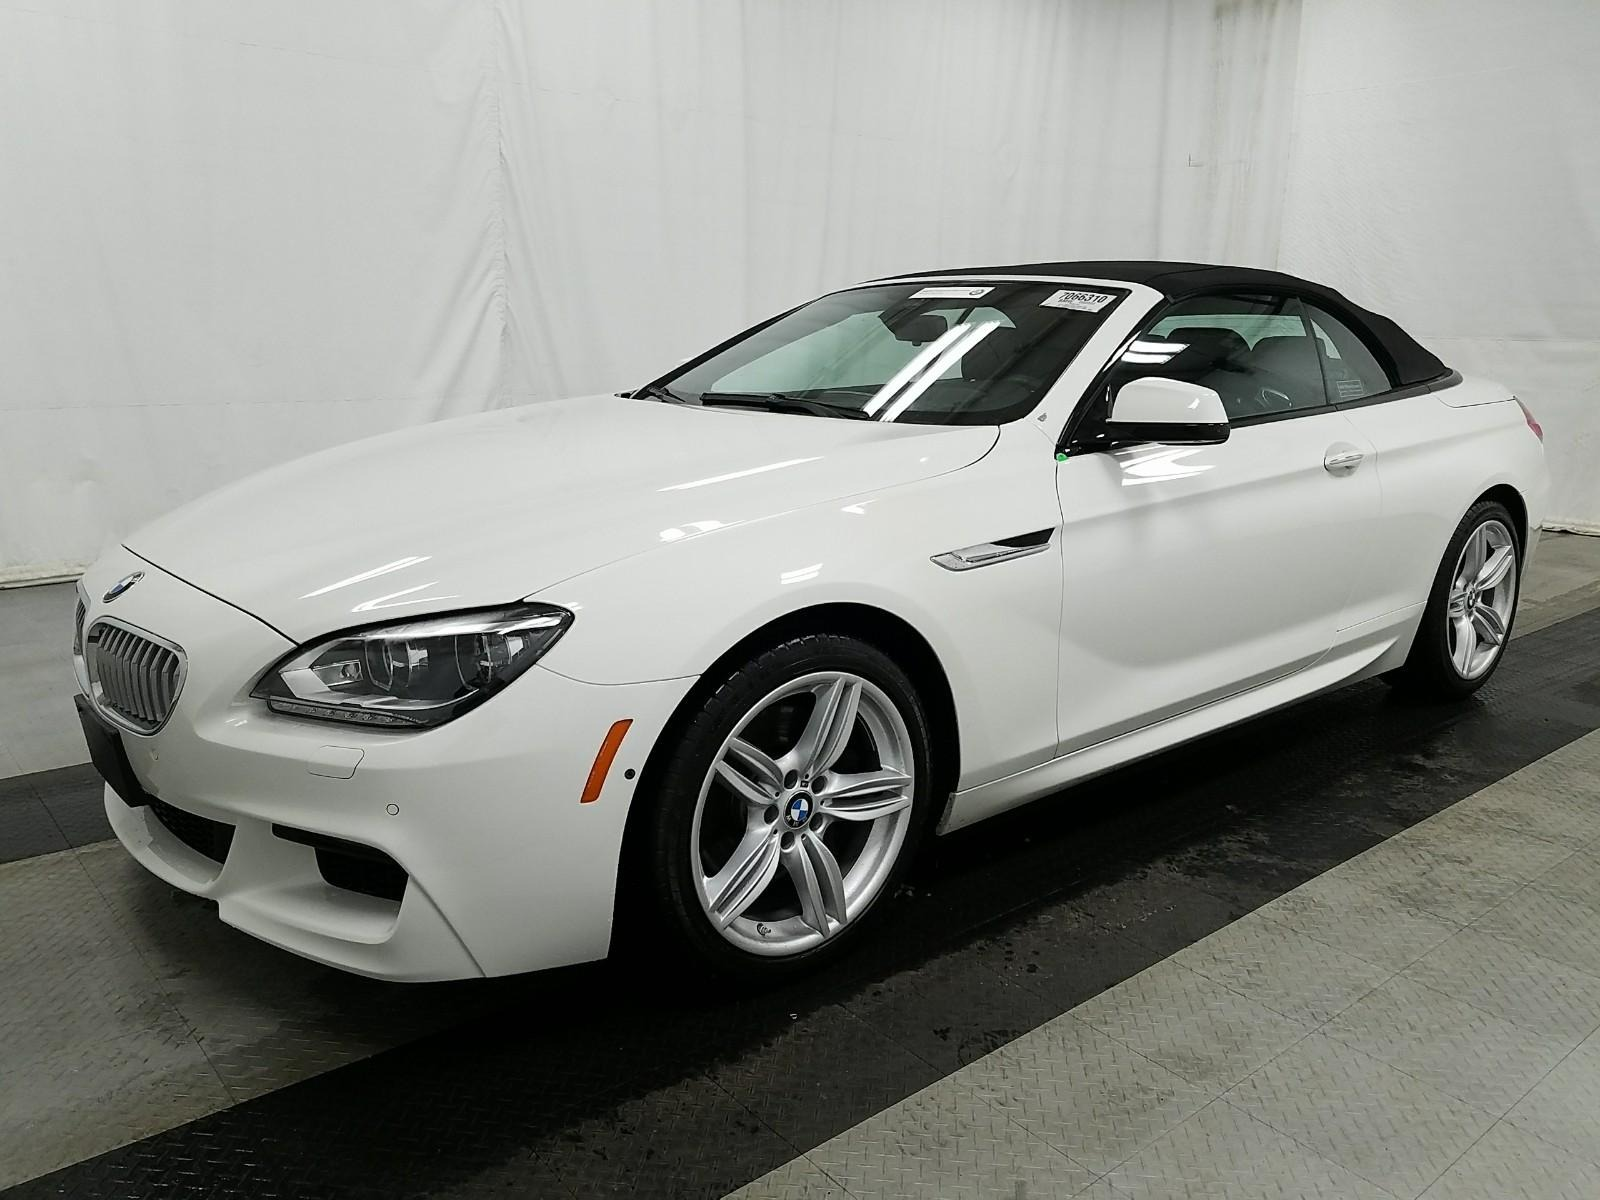 Used BMW Series For Sale Albany NY CarGurus - Bmw 6 series convertible white